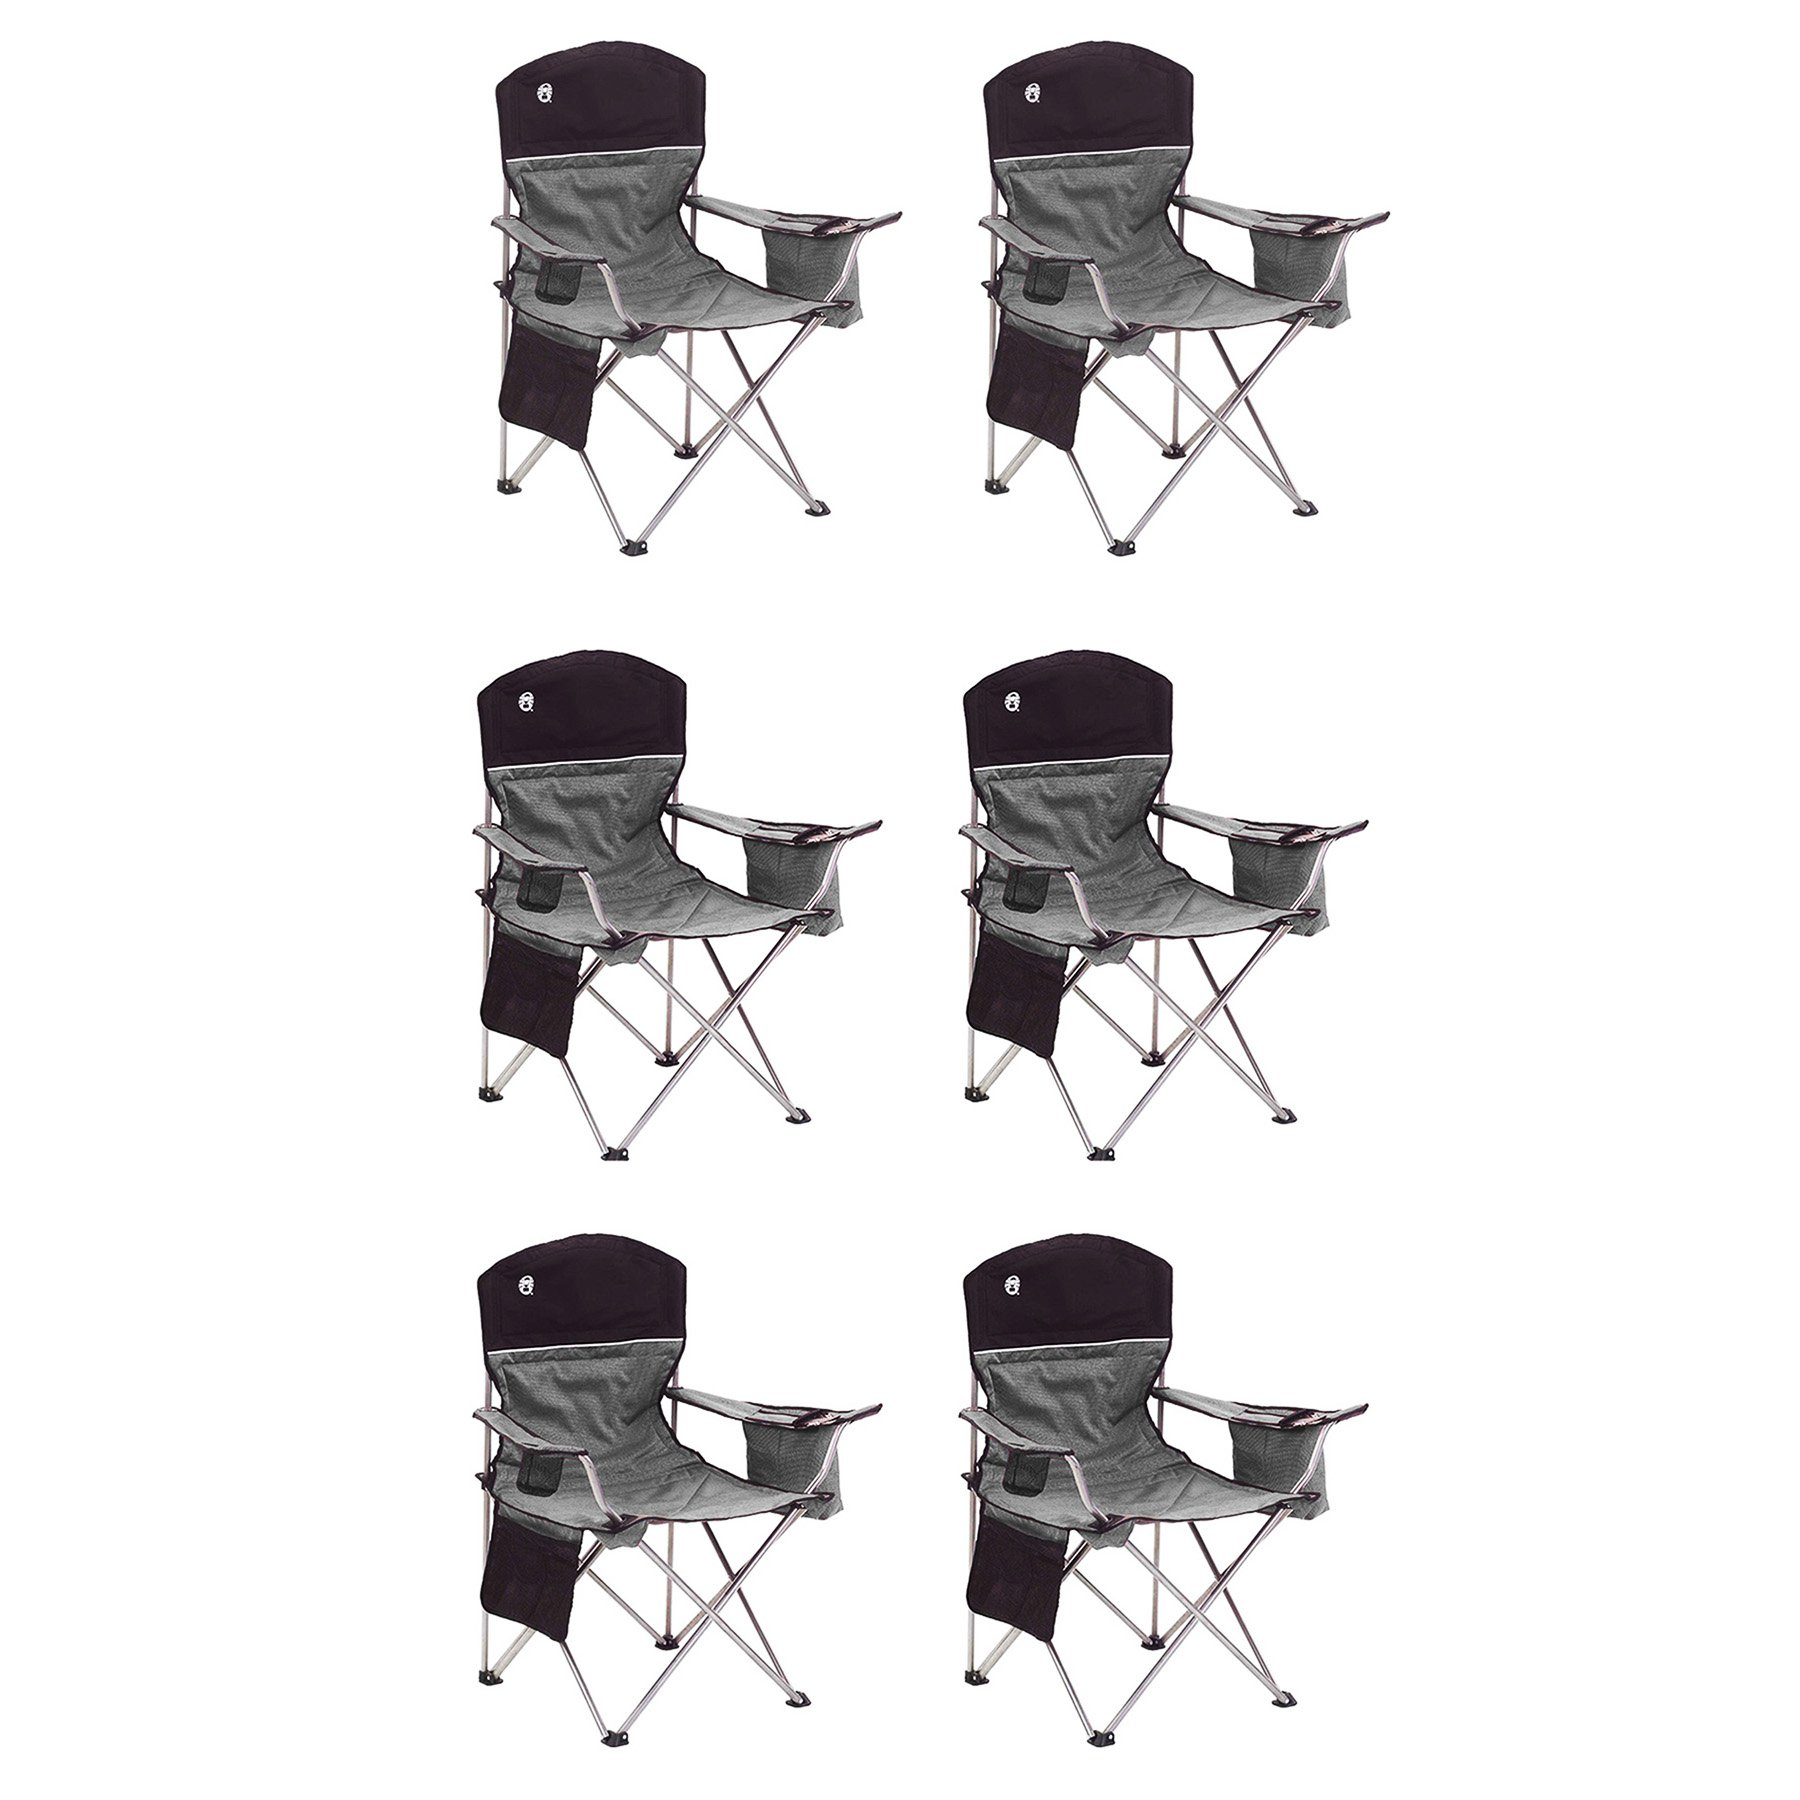 Coleman Oversized Quad Black Chairs + Cooler/Cup Holder, 6-Pack | 6 x 2000020256